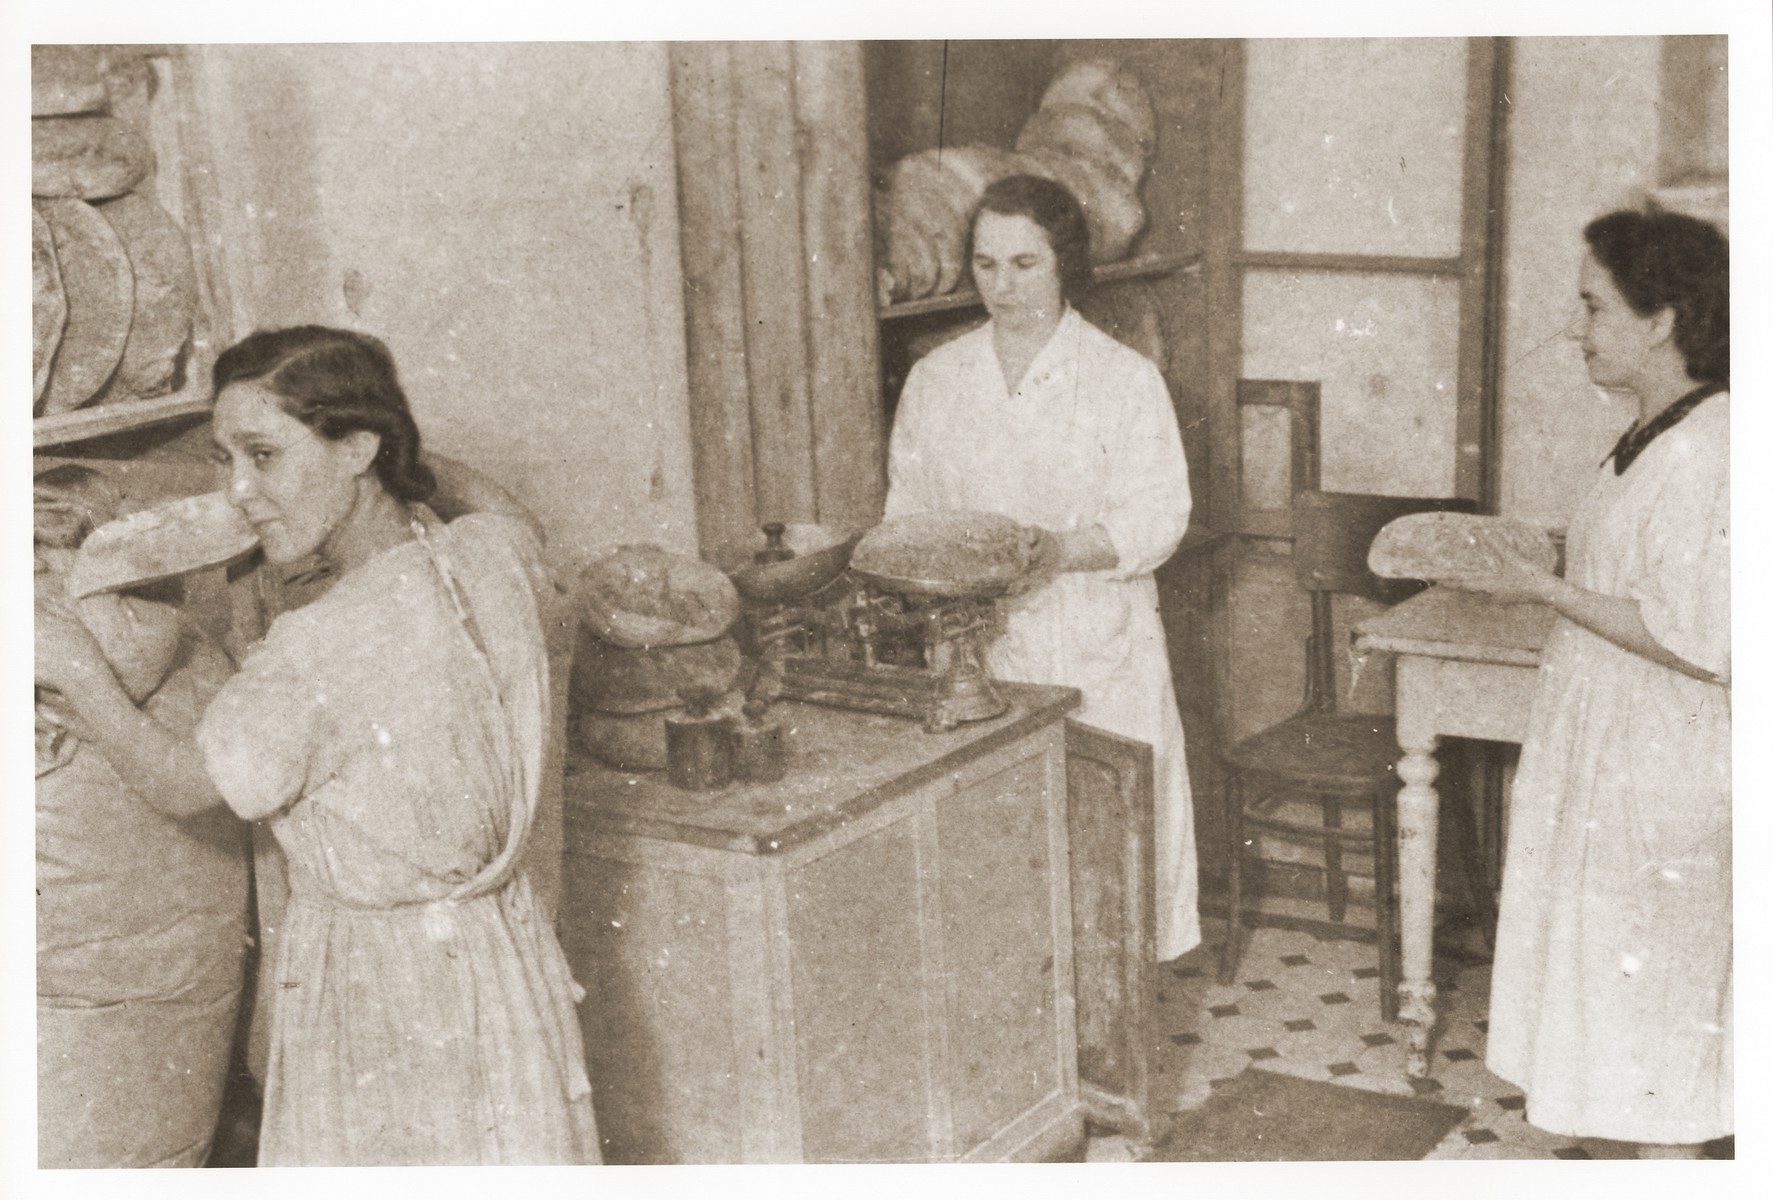 Three women working in a bakery in the Lodz ghetto.